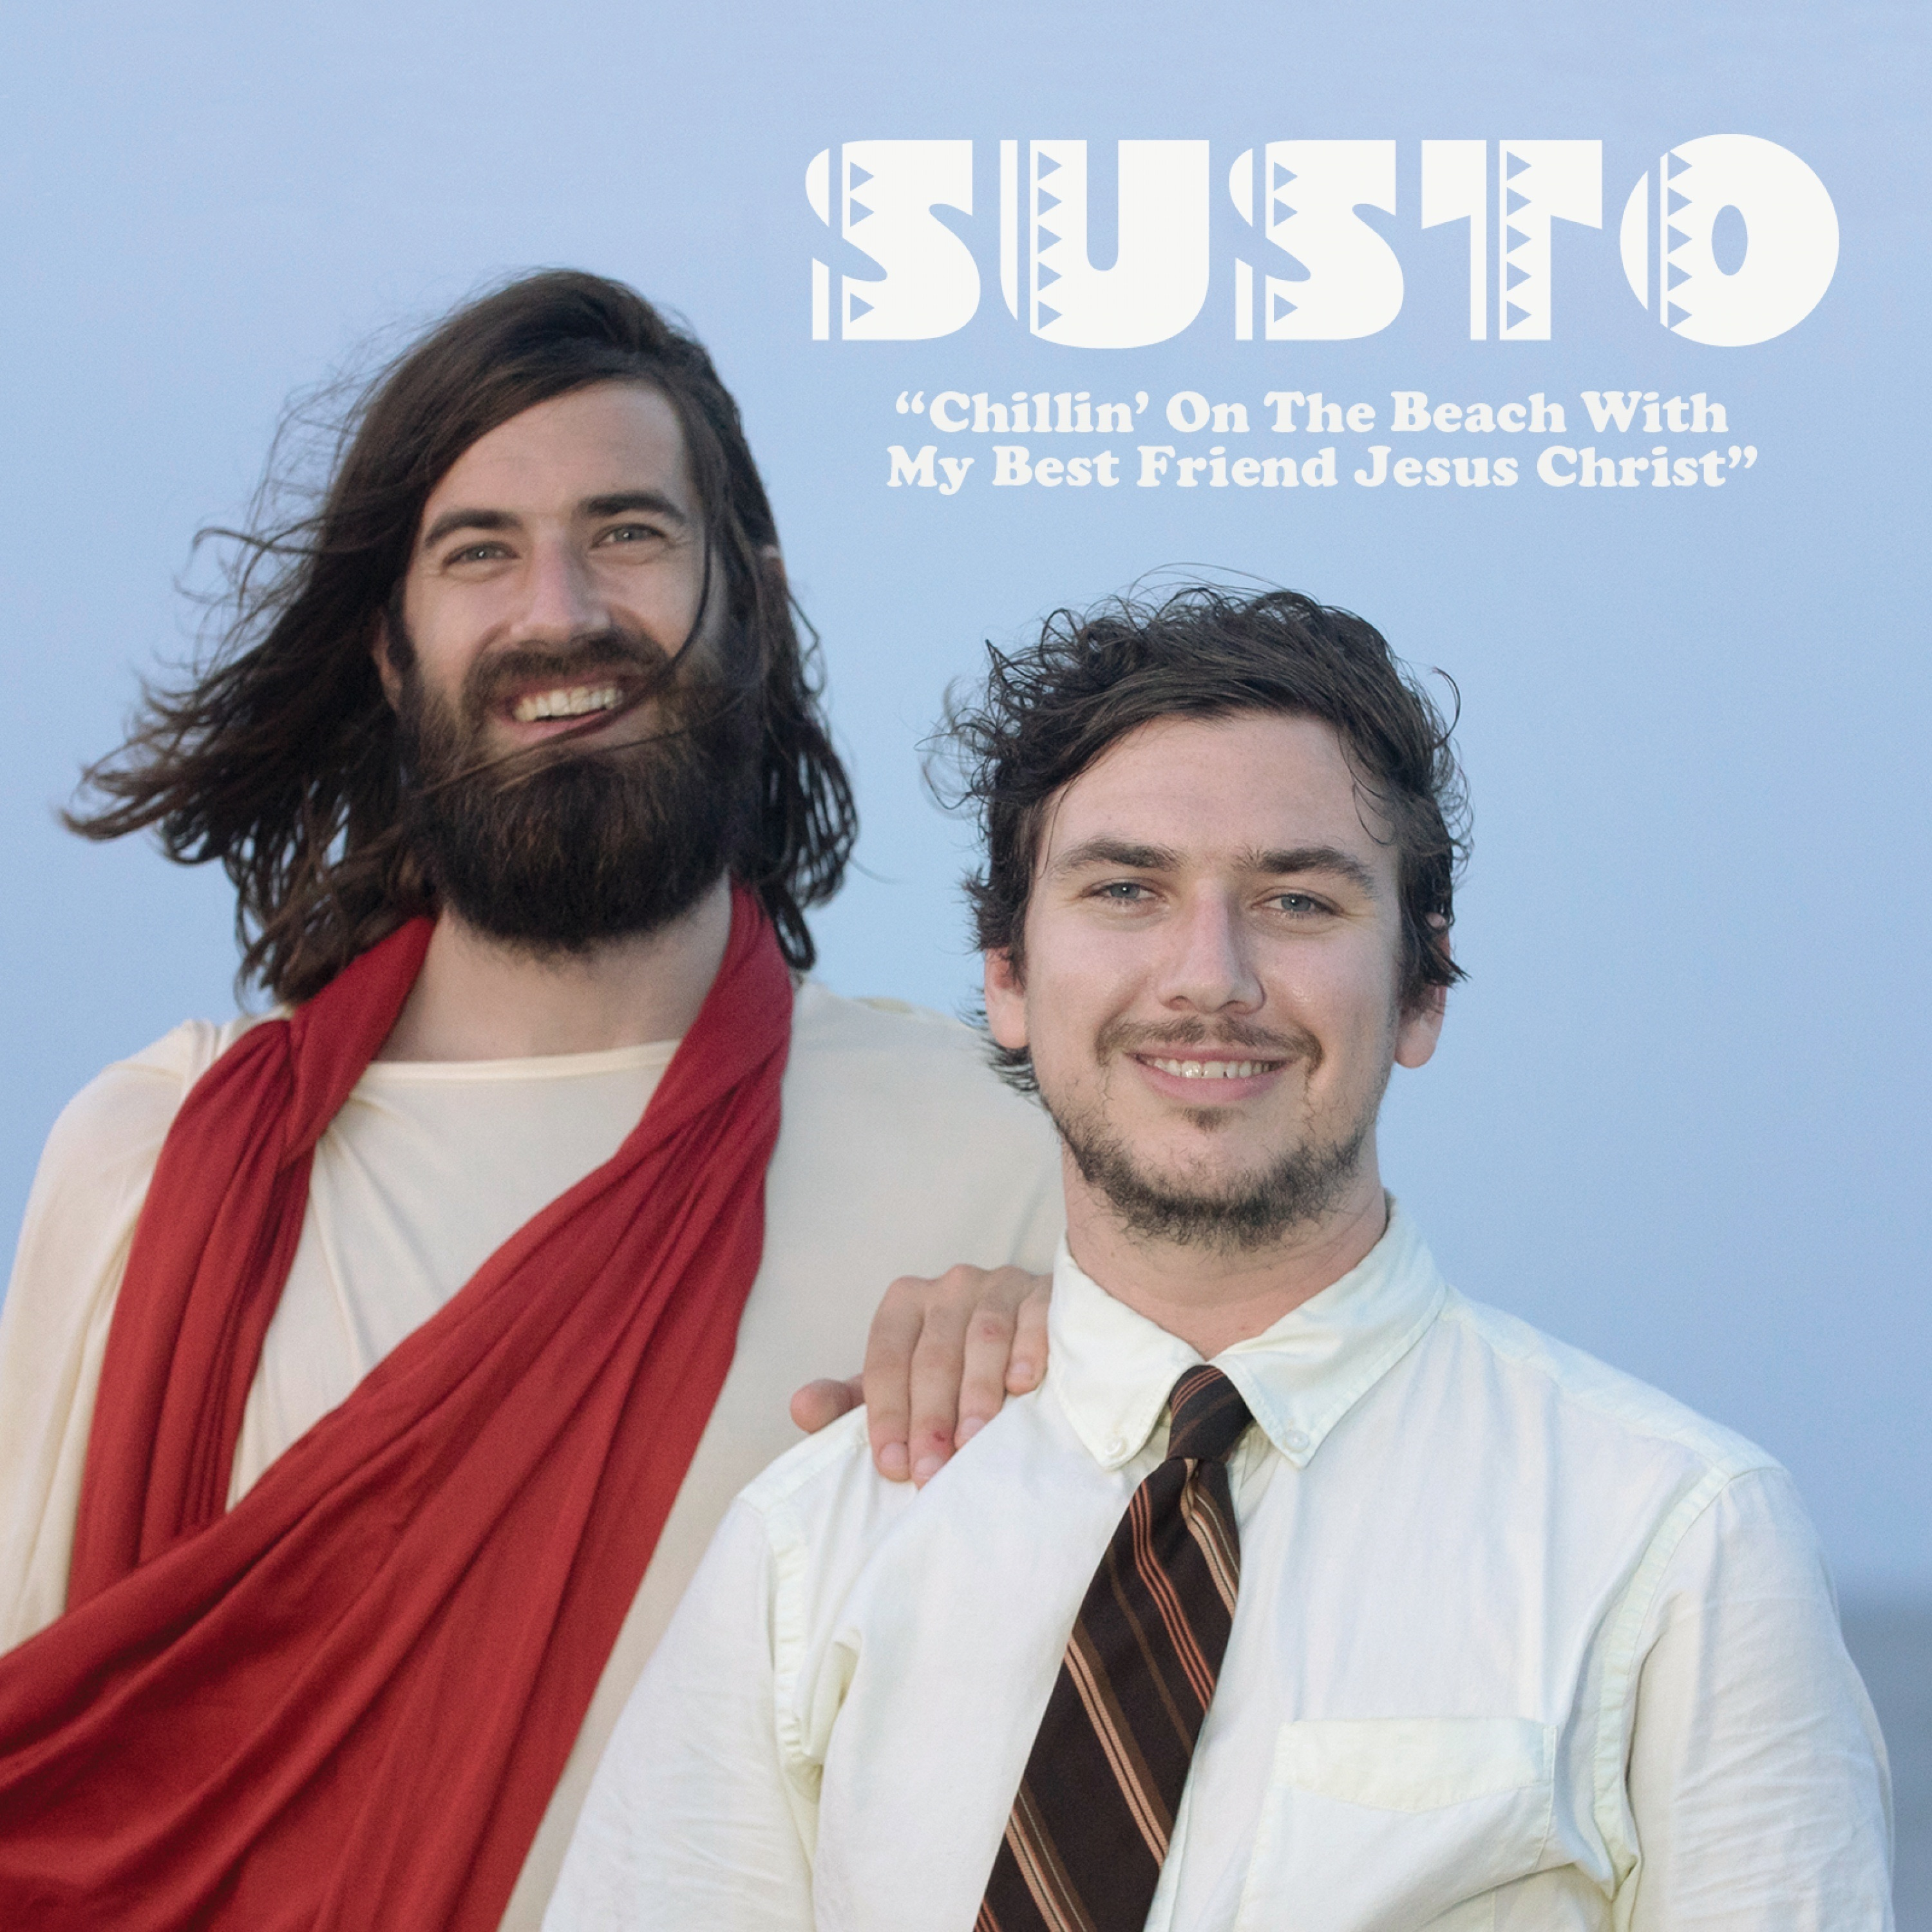 Chillin' On the Beach With My Best Friend Jesus Christ - Single